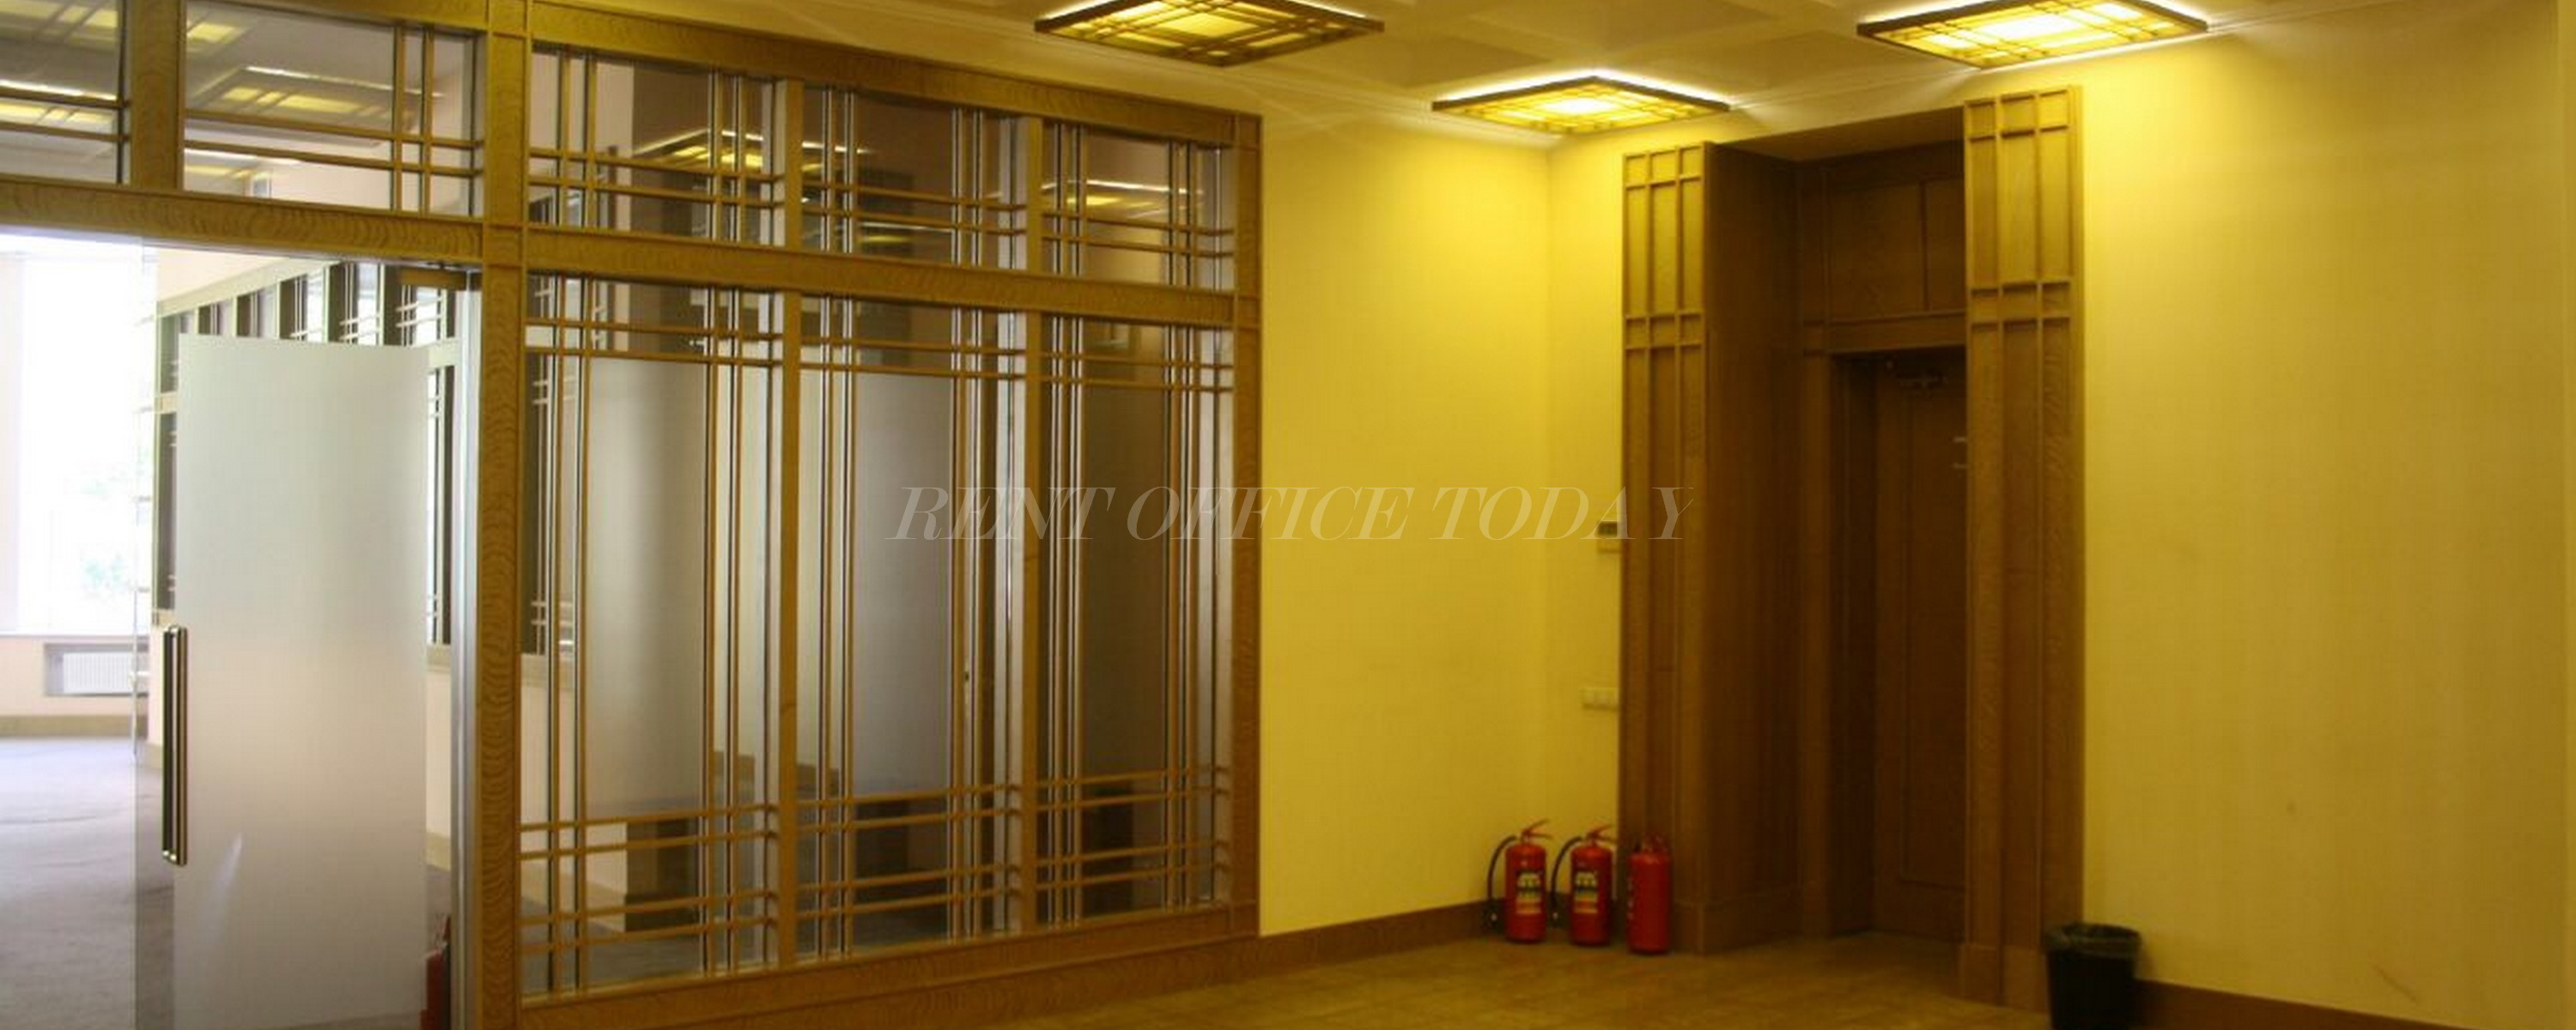 office rent podsosenskiy 20c1-9